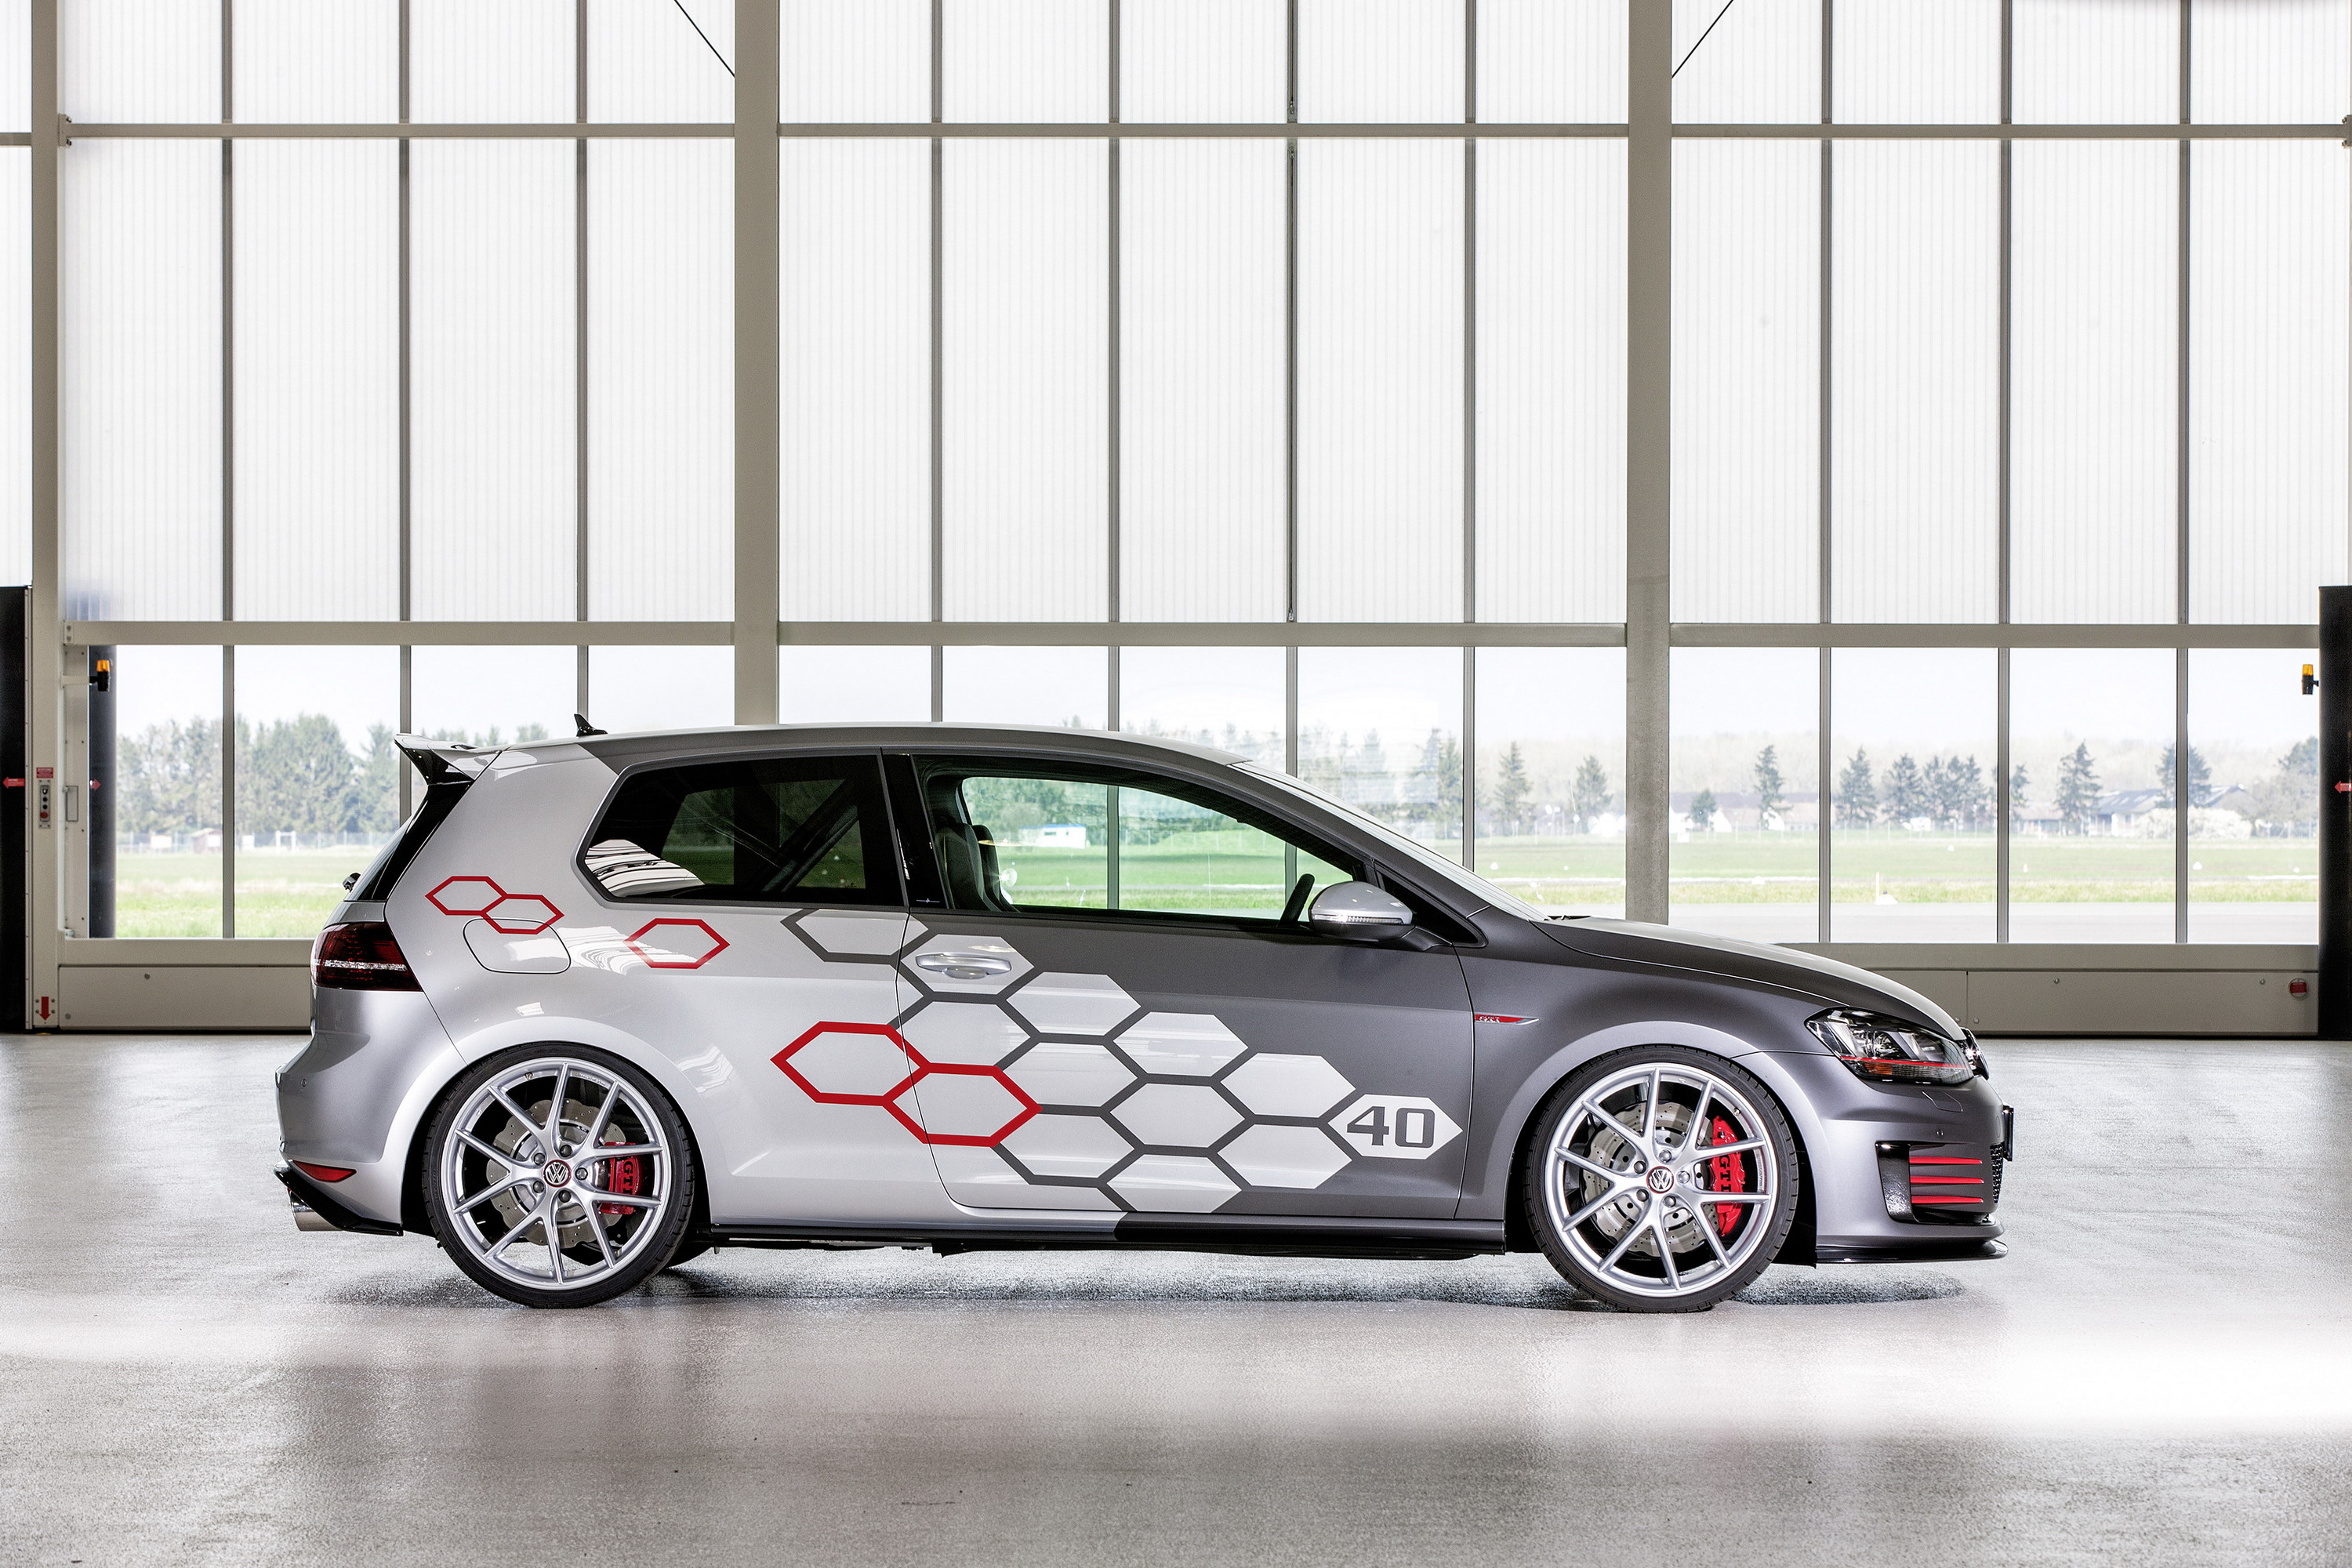 2016 Volkswagen Golf GTI Heartbeat Review   Top Speed. »